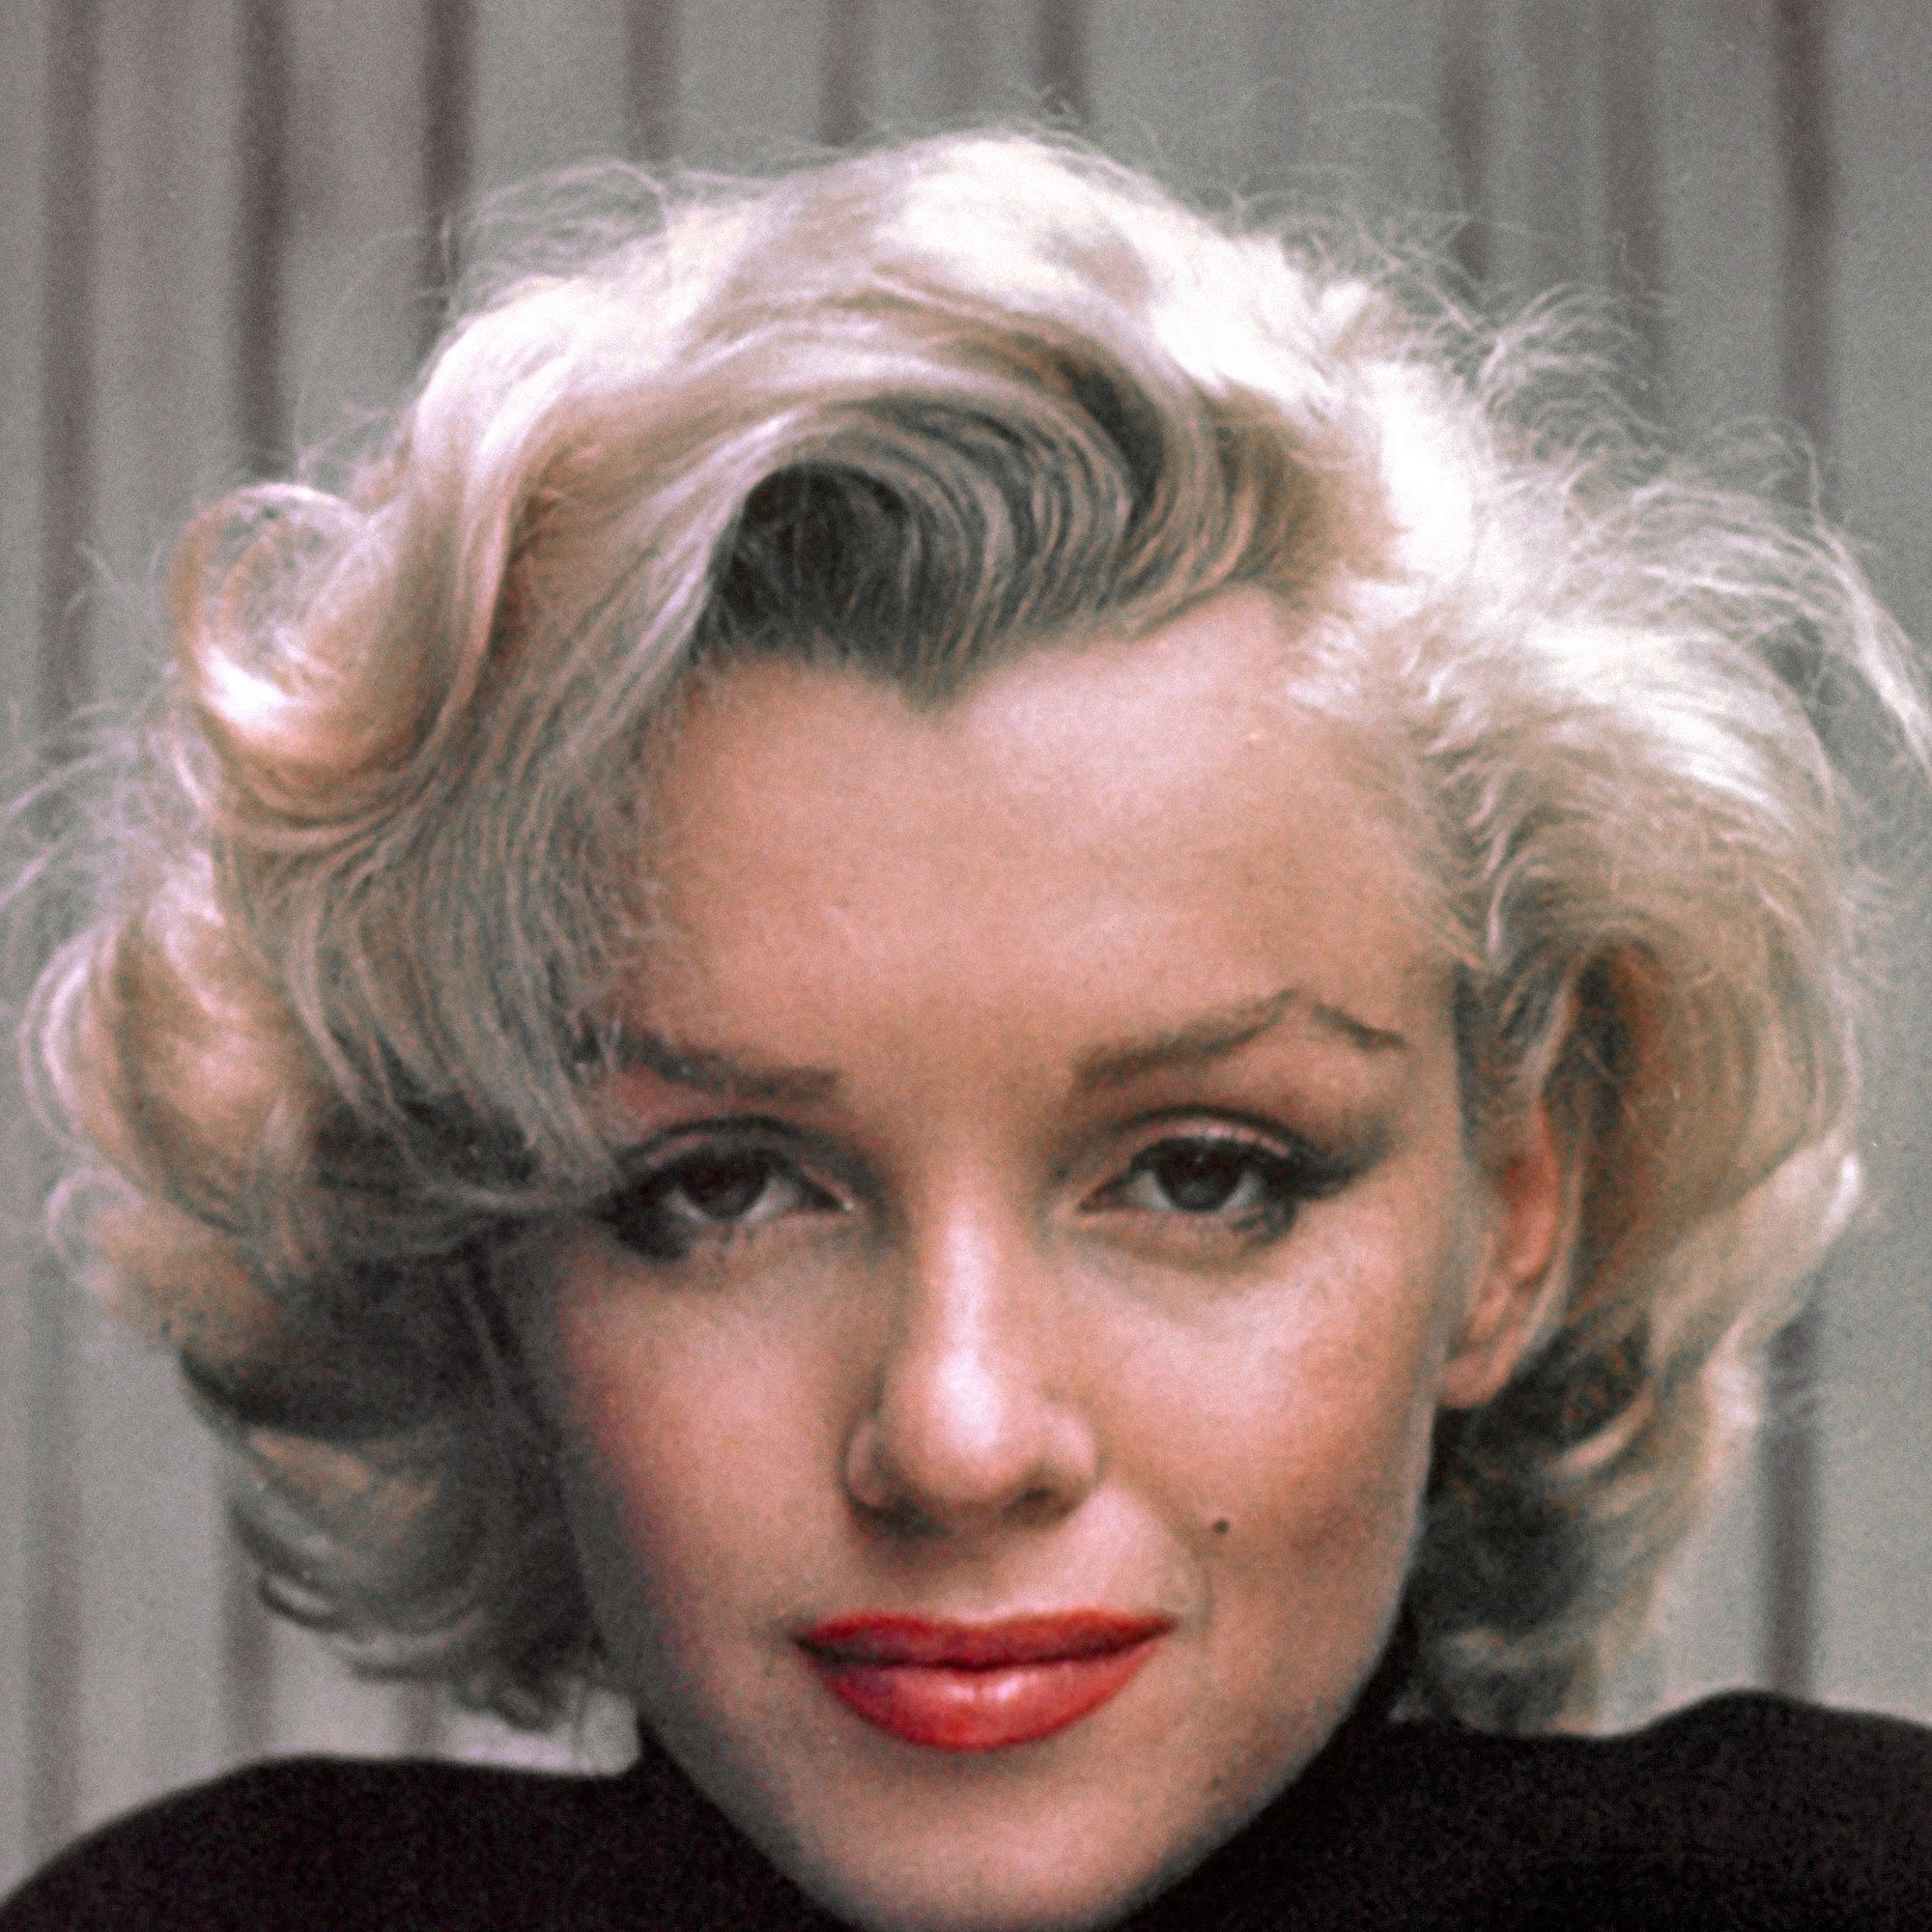 CALIFORNIA, UNITED STATES - MAY 1953:  Marilyn Monroe on patio outside of her home.  (Photo by Alfred Eisenstaedt/Pix Inc./The LIFE Picture Collection/Getty Images)